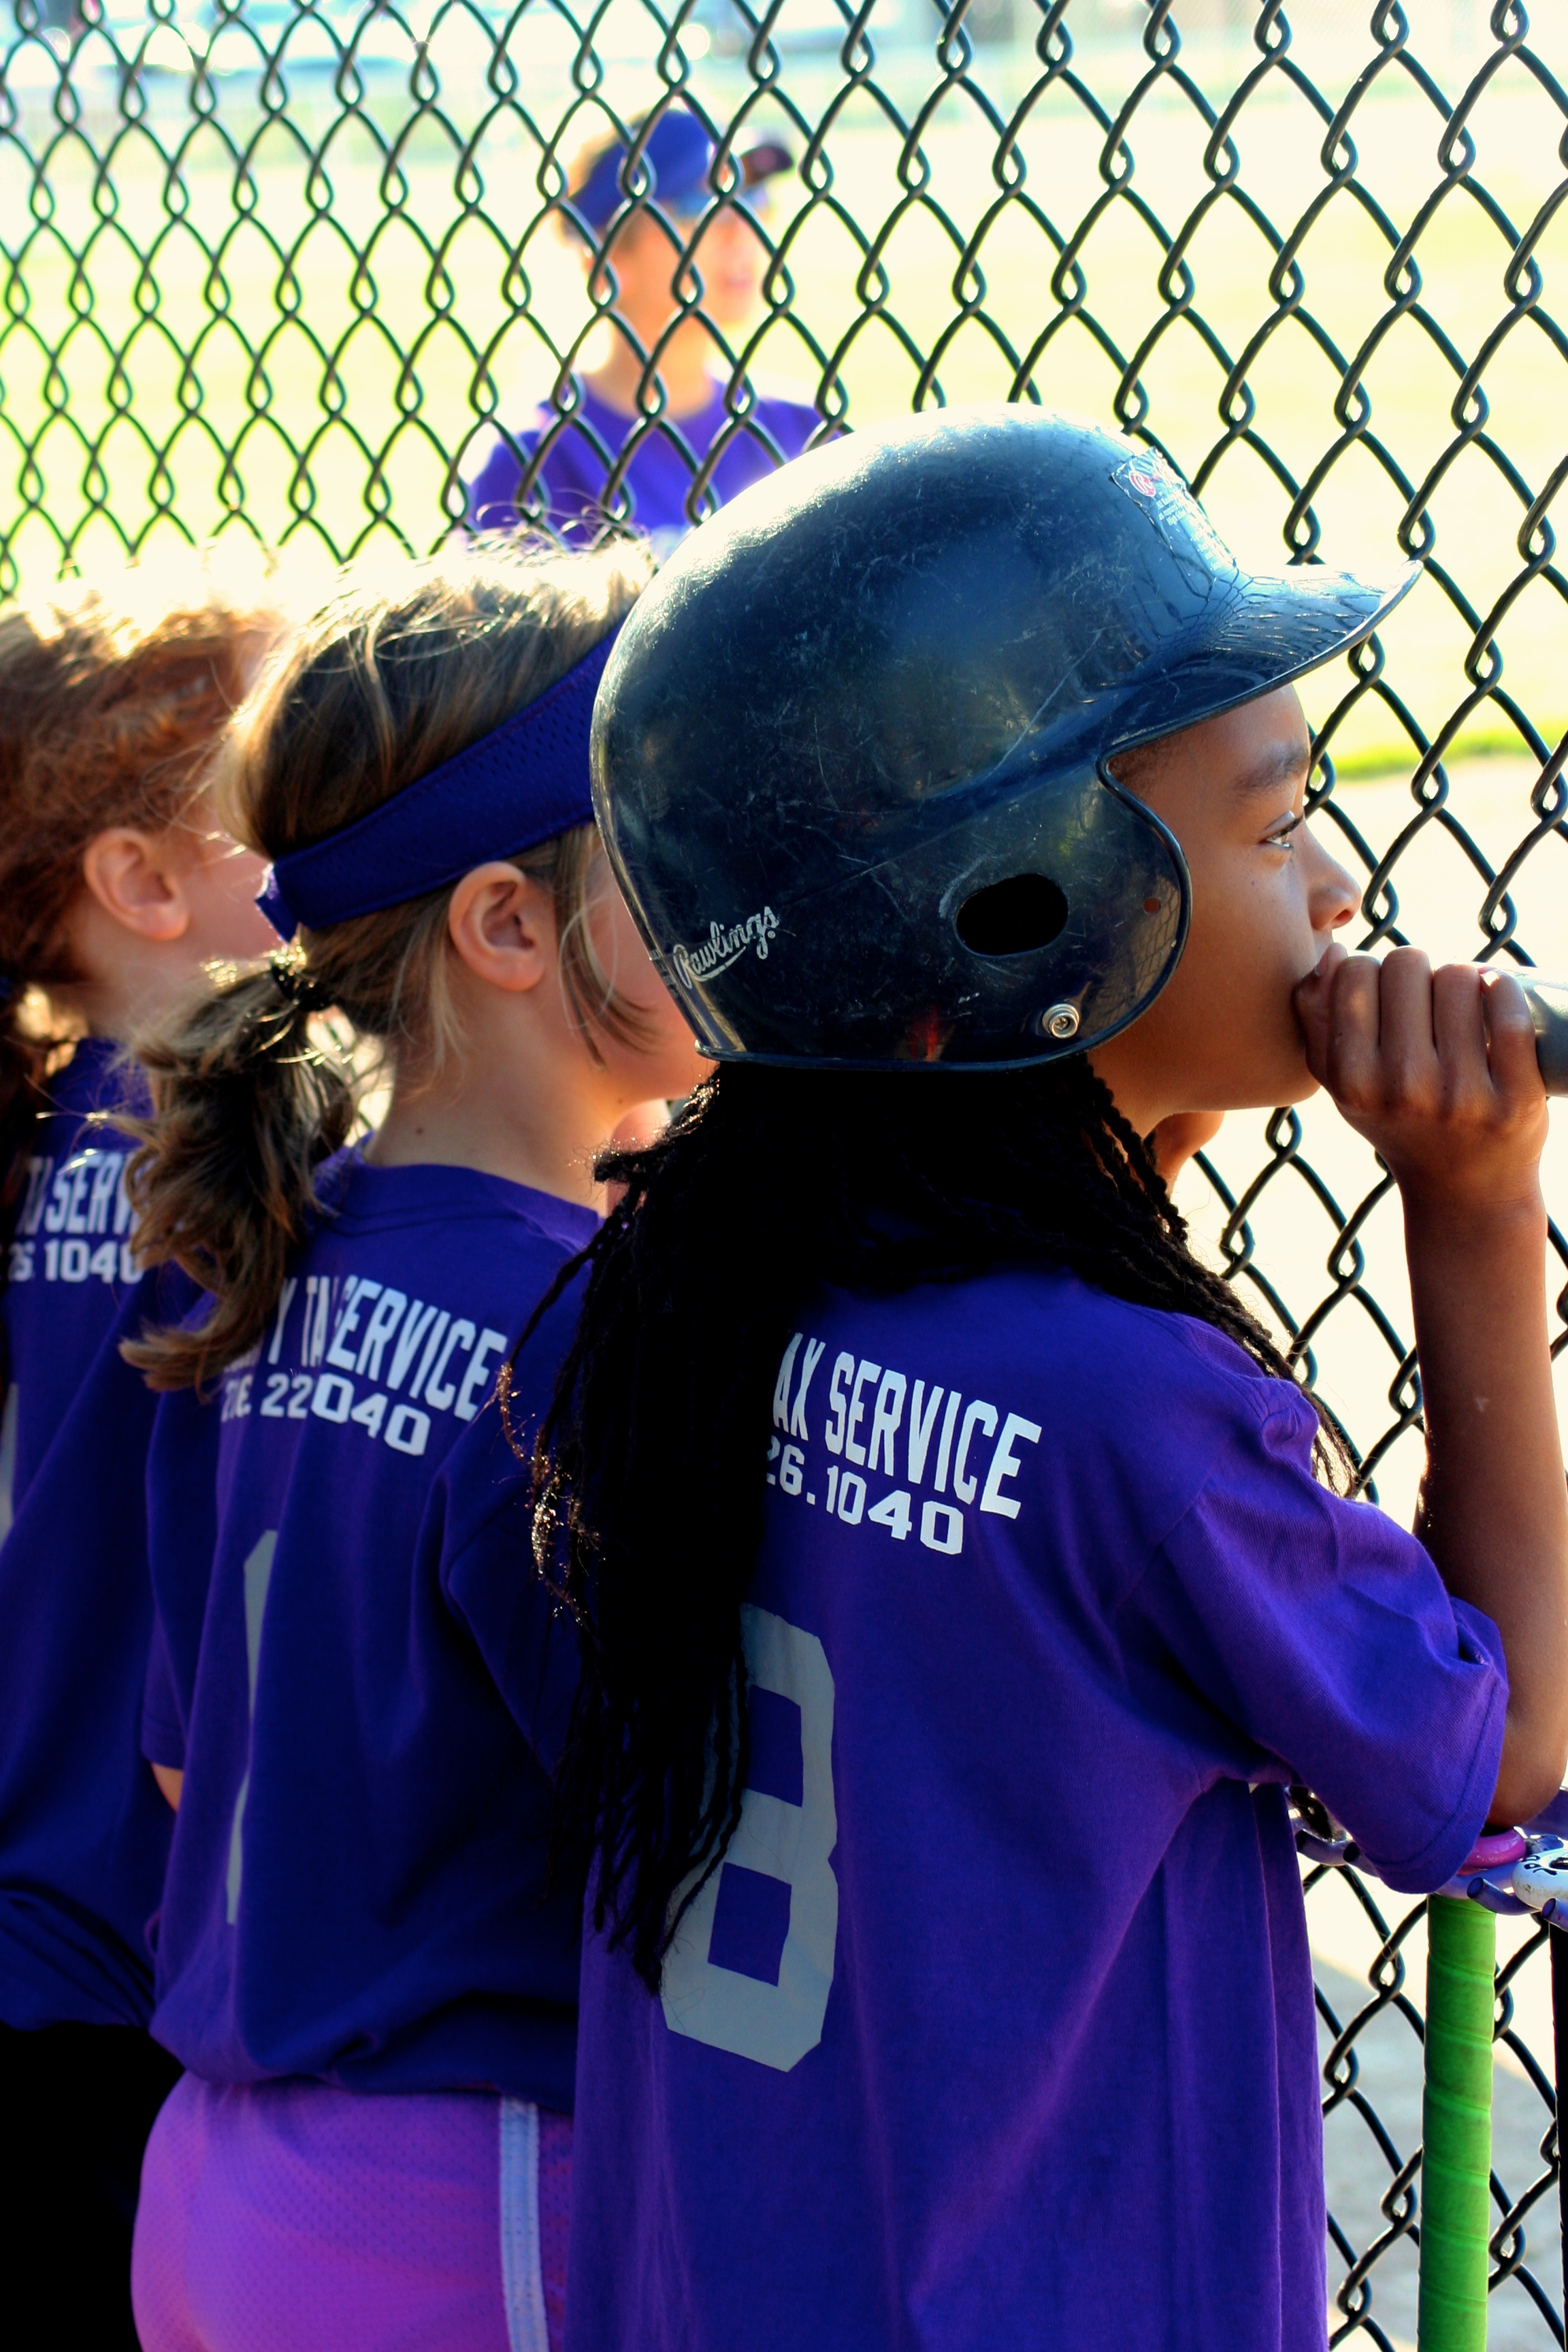 Lkwd Rec baseball, track and field, summer camps and more!